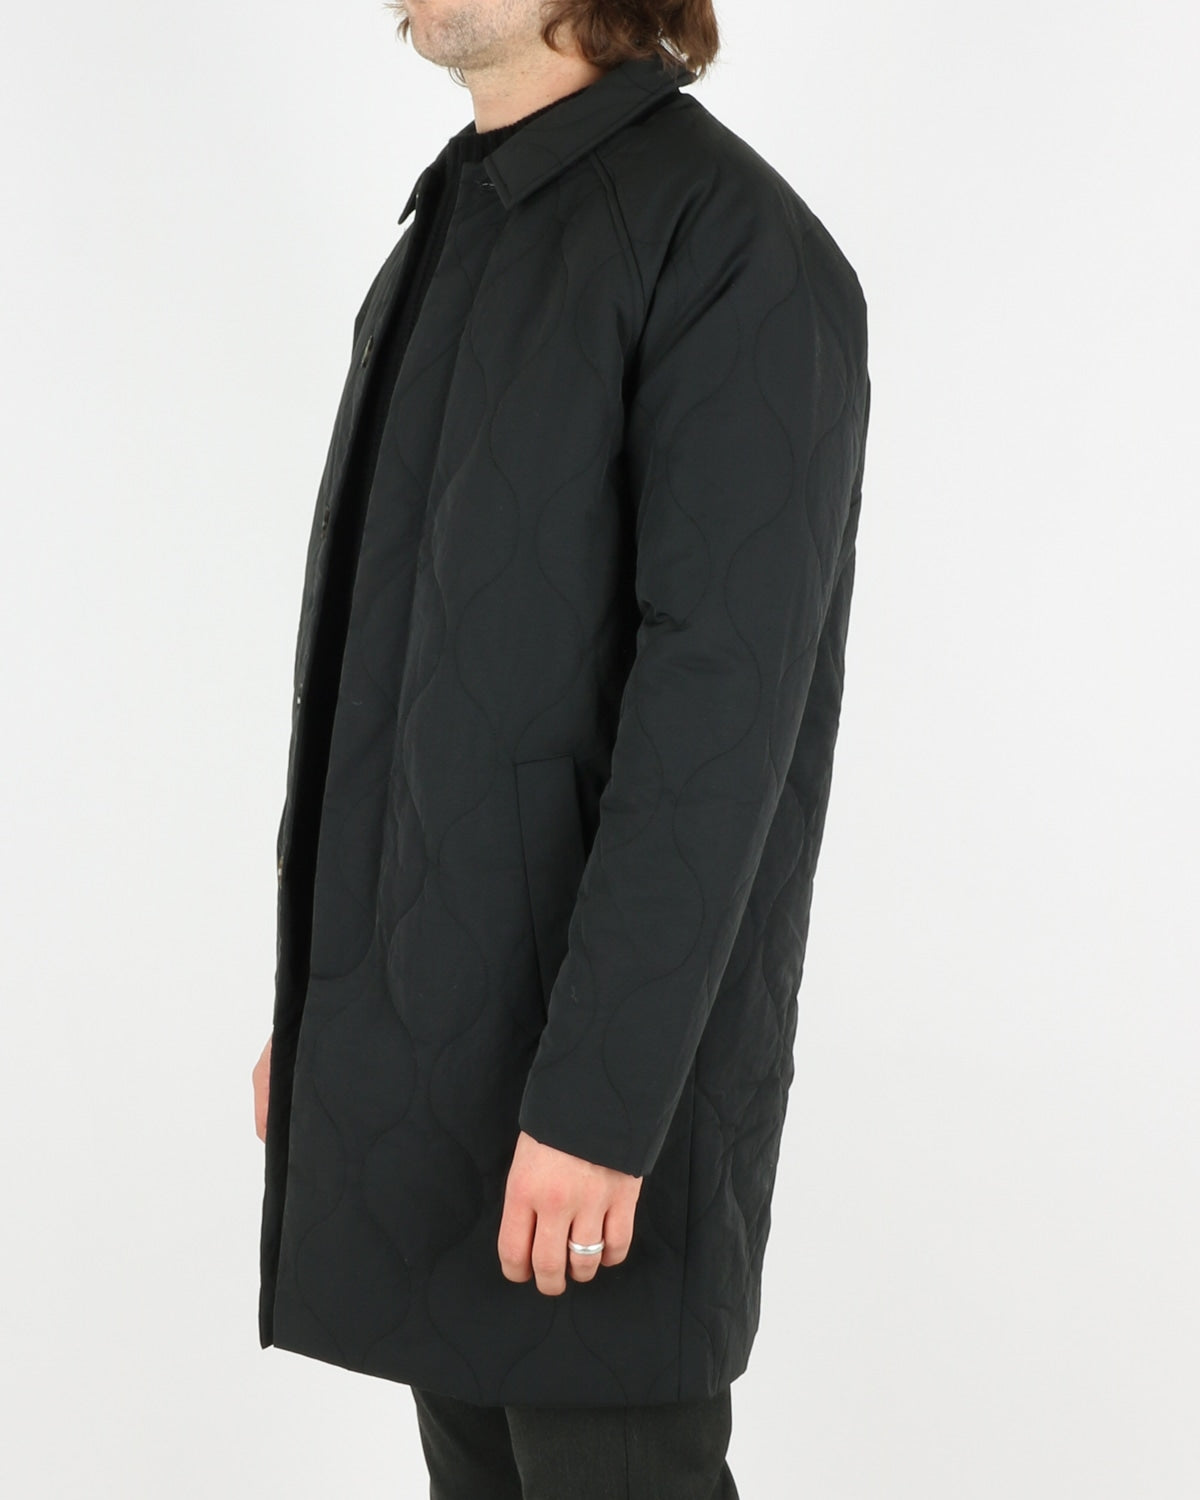 Atlas Coat, black